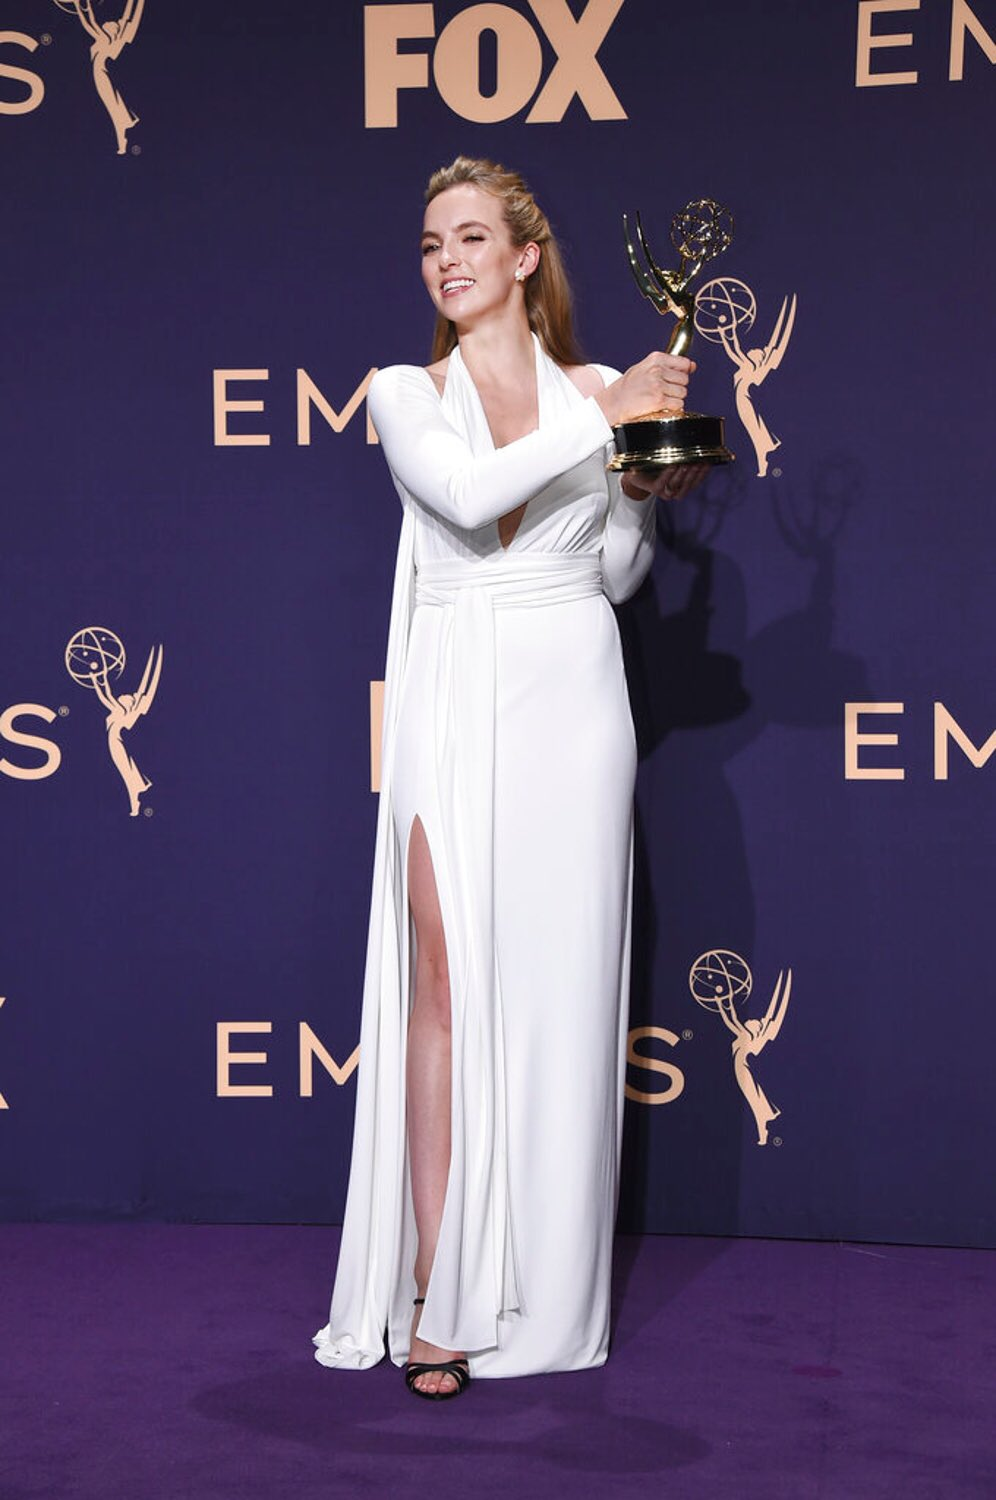 Jodie photographed with her award on the purple carpet after her #Emmys win